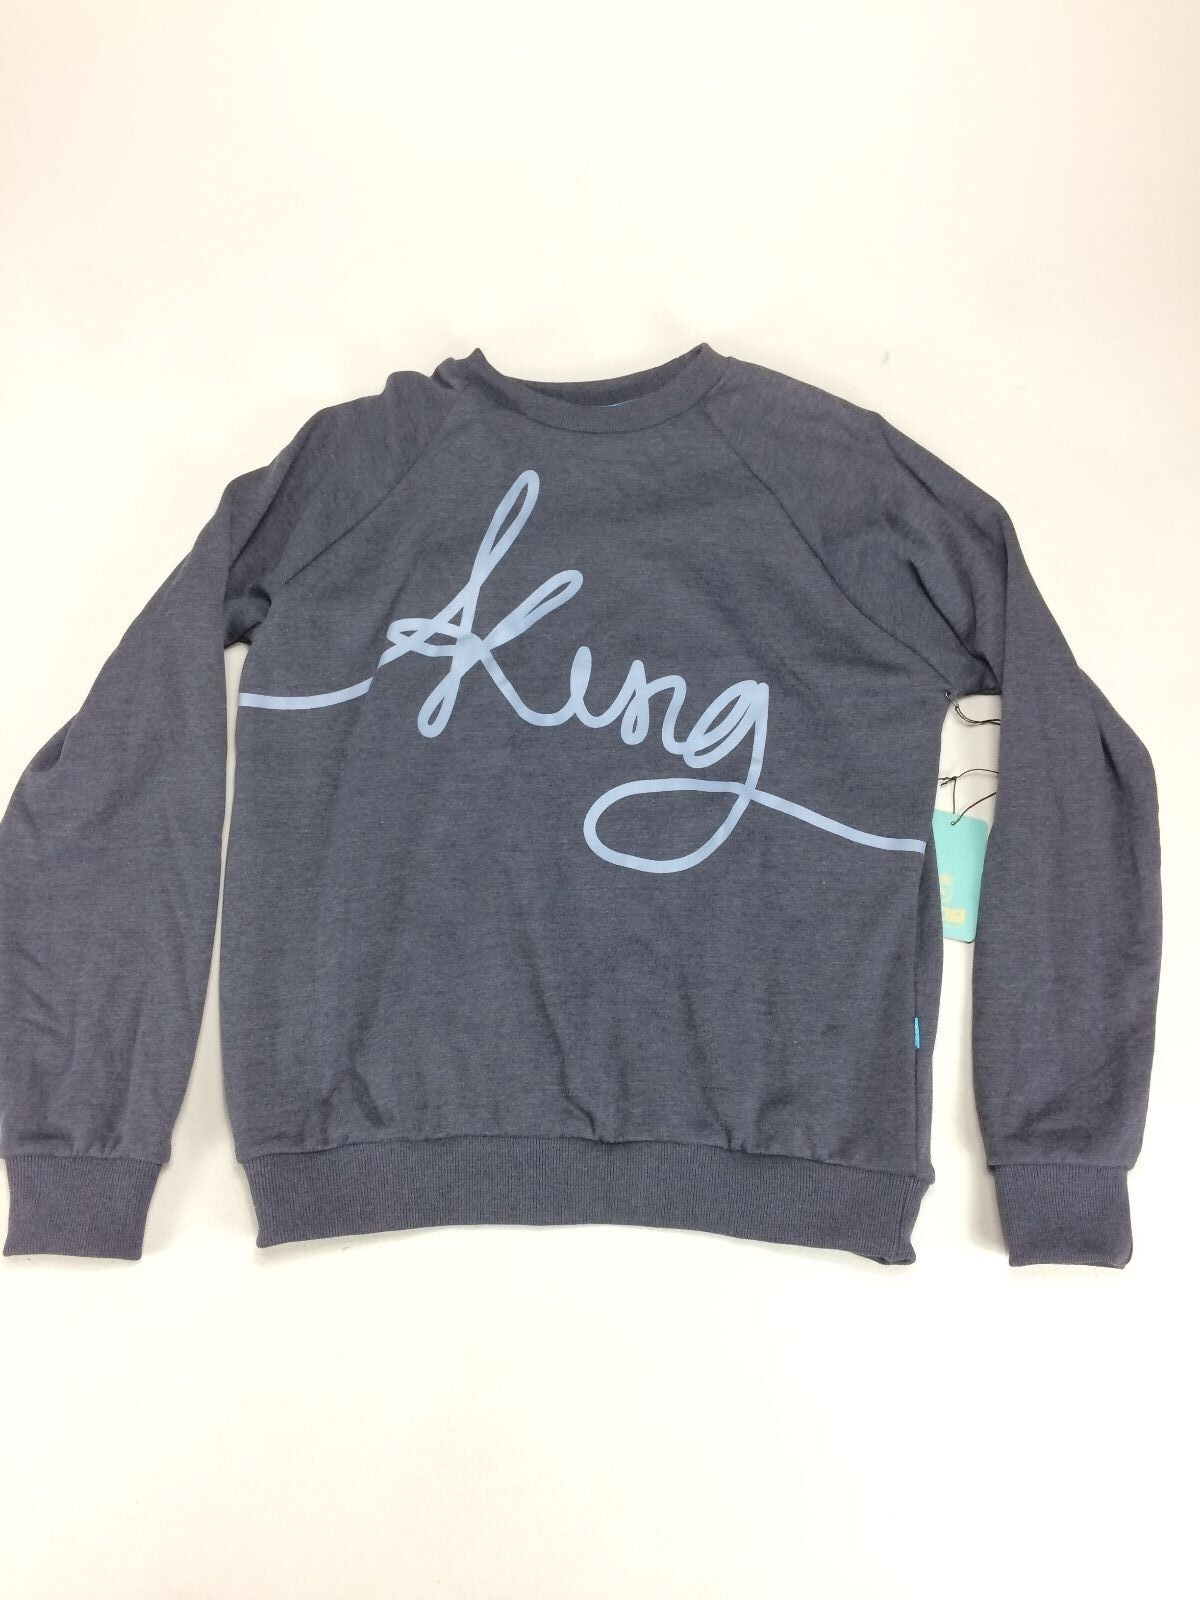 King Clothing Signature Crew Sweatshirt In Blau Größes S XL